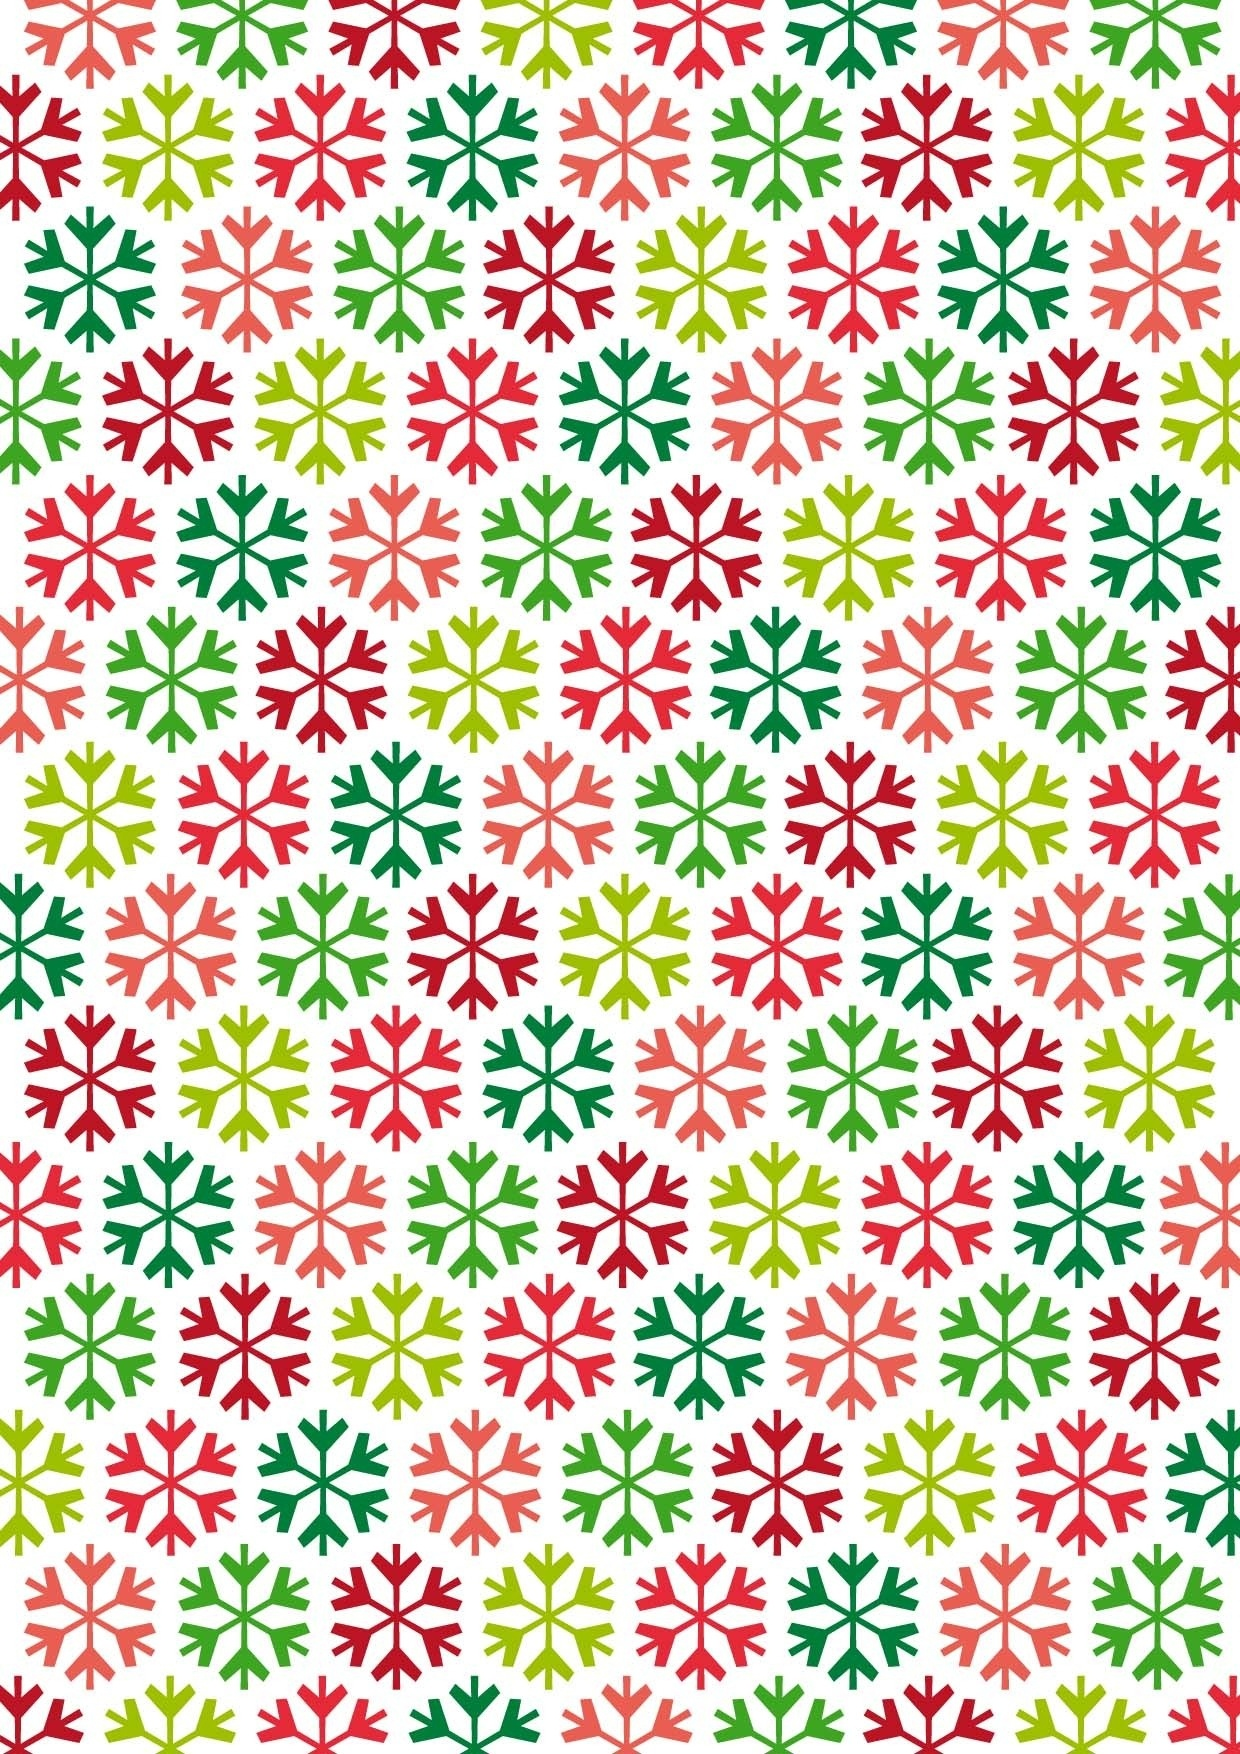 Free Printable Christmas Paper (90+ Images In Collection) Page 1 - Free Printable Christmas Paper